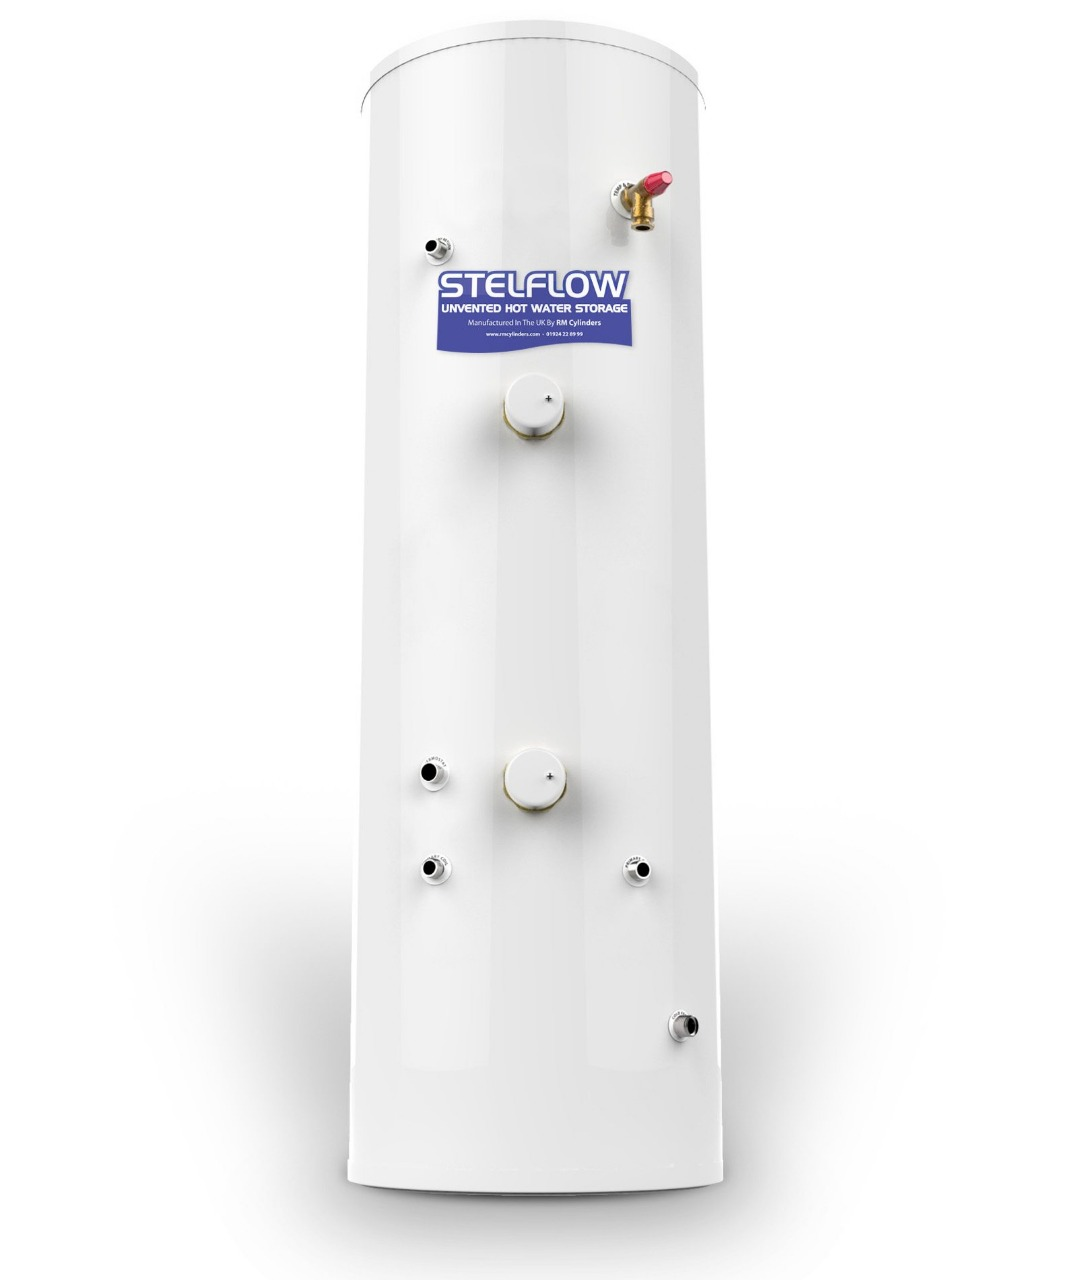 https://www.mepstock.co.uk/admin/images/Stelflow (RM) 210 L Direct Slimline Unvented Cylinder -  MEP Stock Ltd.jpeg